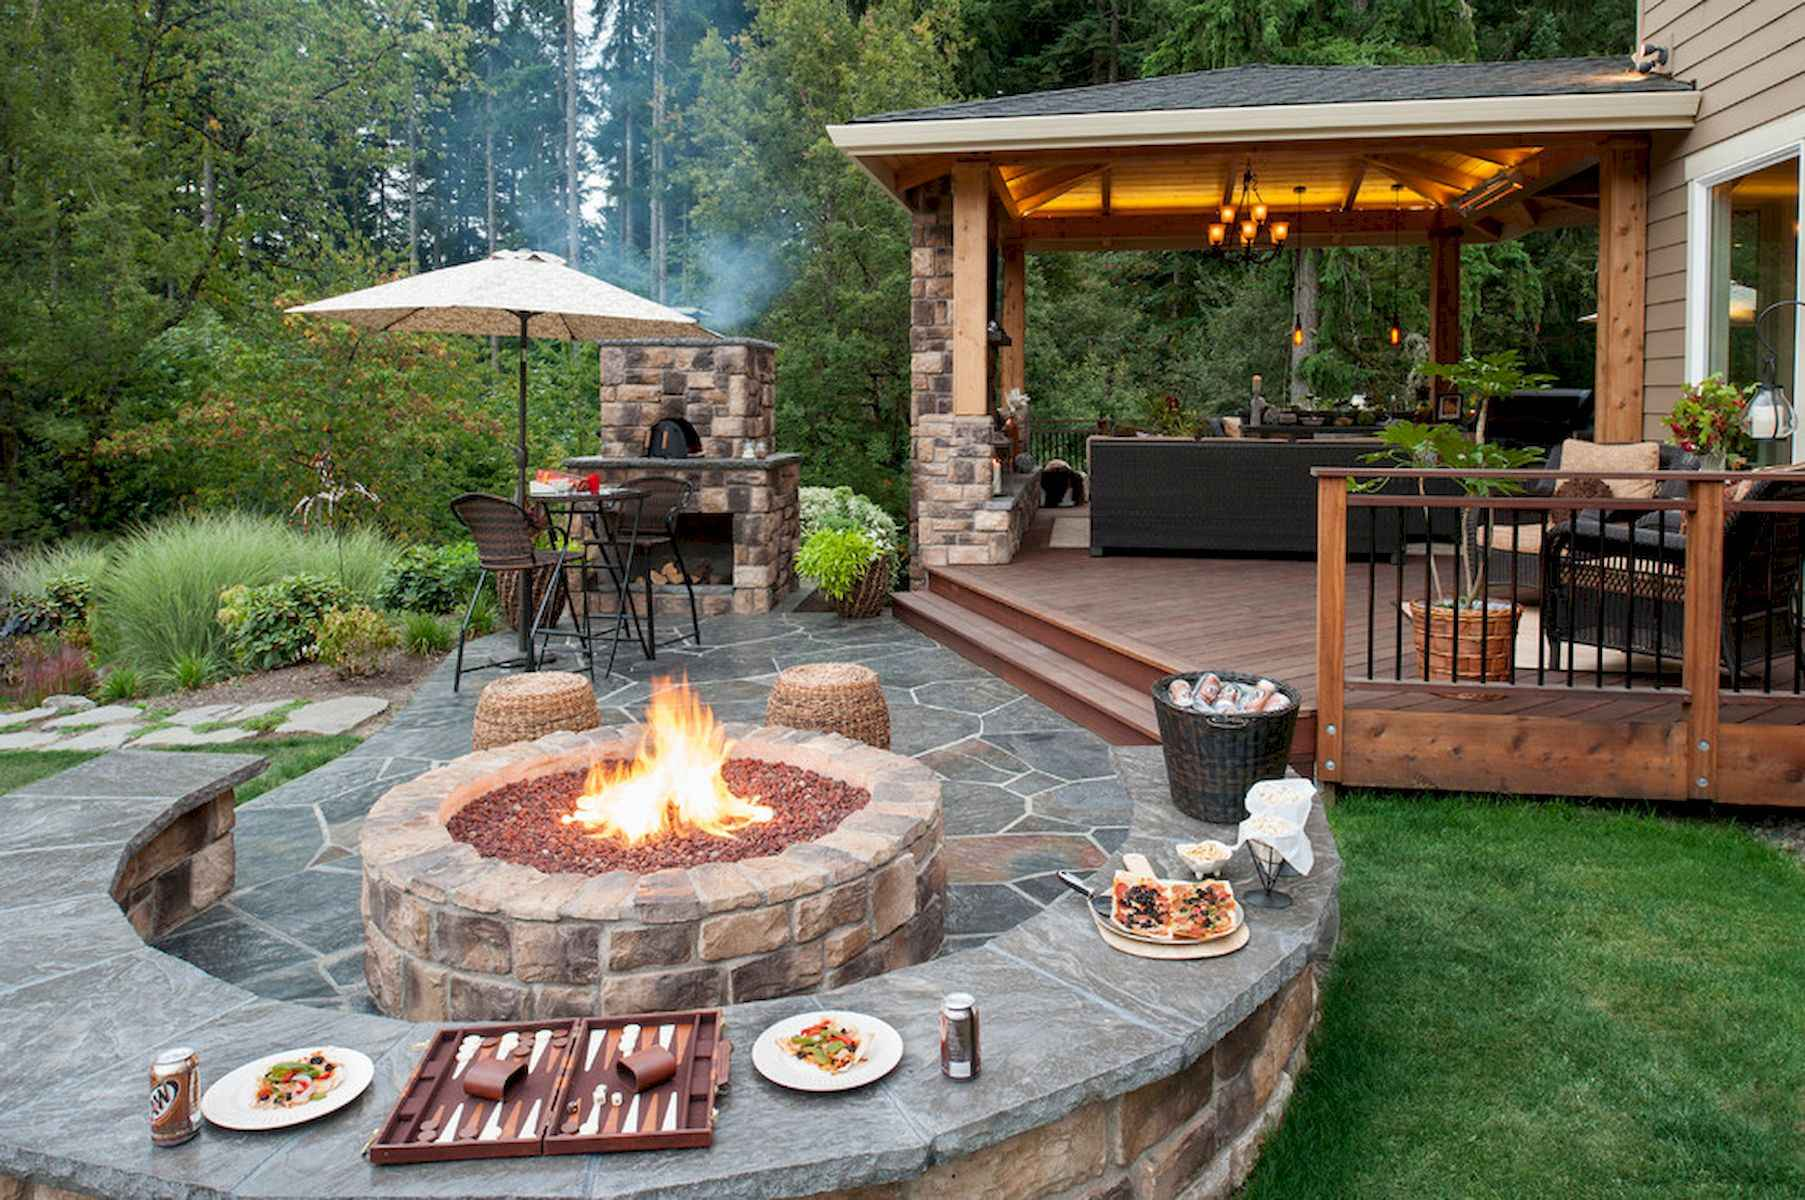 80 DIY Summery Backyard Projects Ideas Make Your Summer Awesome (25)